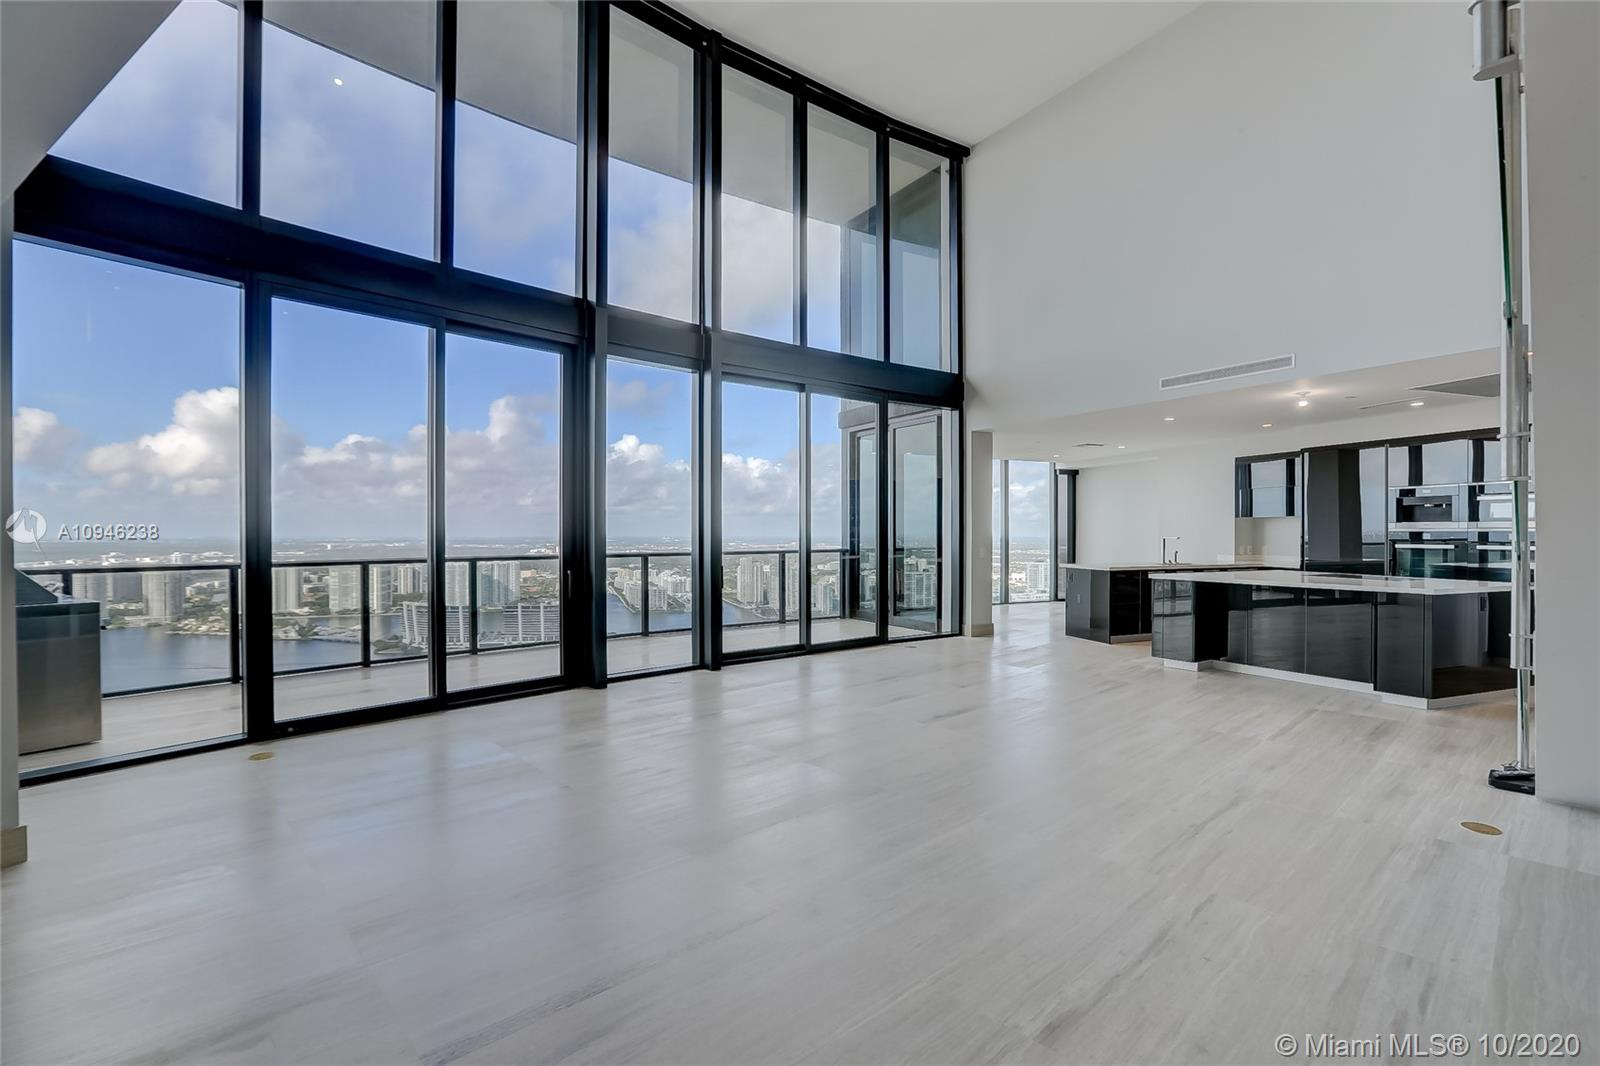 Be the first to live in one of only 16 exclusive Duplex residences in the entire Porsche Design Tower completed with marble flooring throughout, double ceiling balcony, living and summer kitchen area, separate den on the second floor, incredible intracoastal and ocean views, and high-tech car elevator system that can transport two cars up to your private home. Amenities include oceanfront gym & spa, pool & beach service, restaurants, theater, virtual golf, race car simulator, and more.